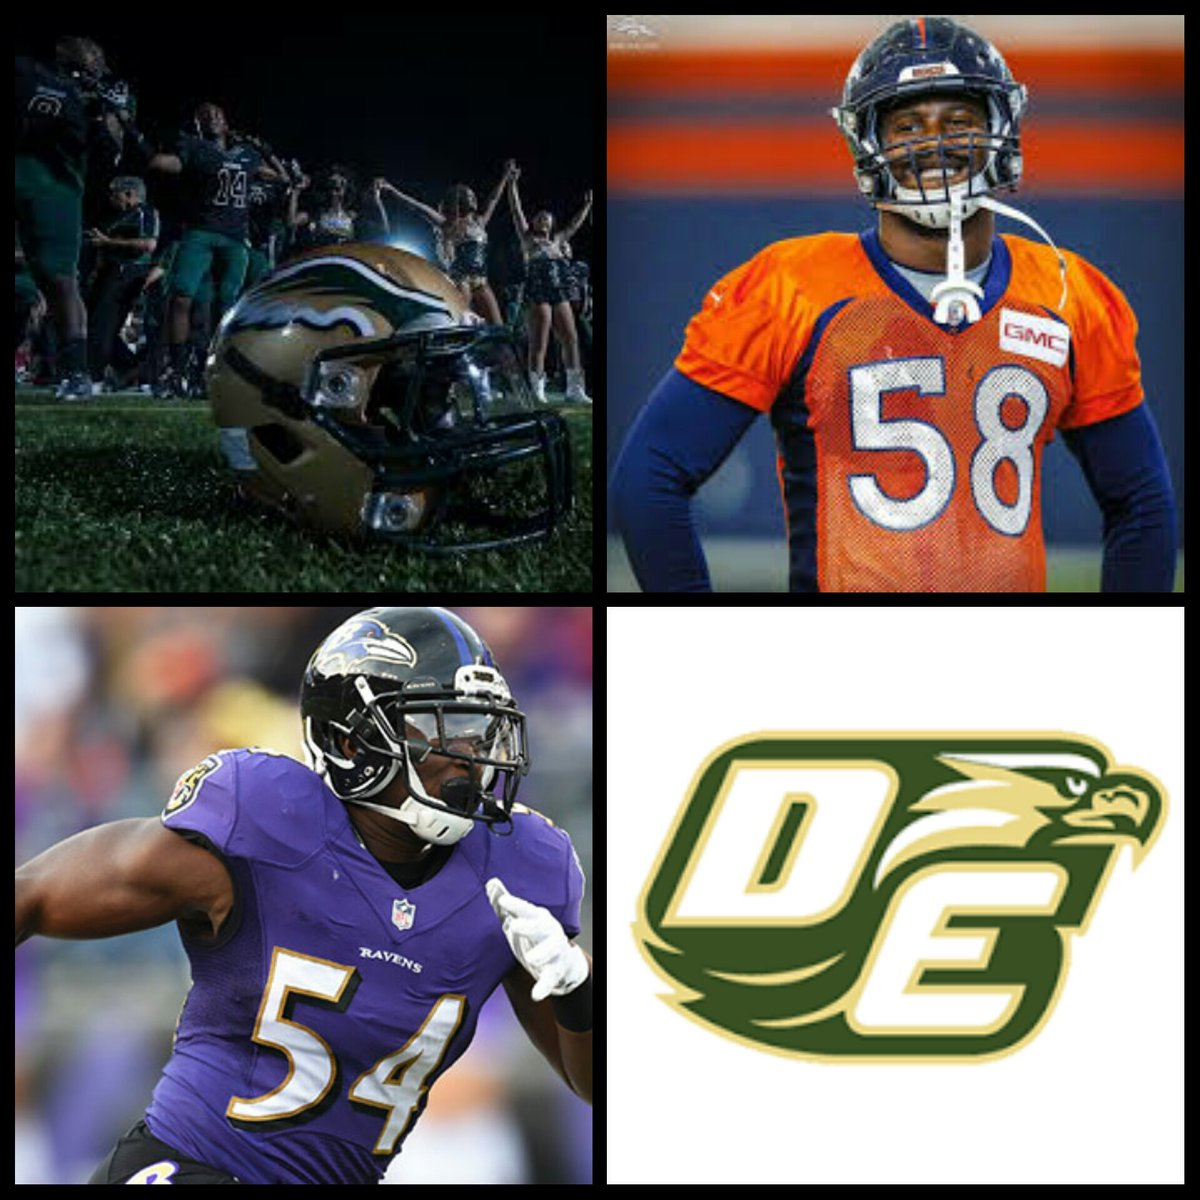 .@DesotoFB  #NFL All-Pro 1st team Von Miller LB #NFL All-Pro 2nd team Zachary Orr LB #WeFoundOut #OrrBoyz  #DeSotoU https://t.co/qk8LXj6W45